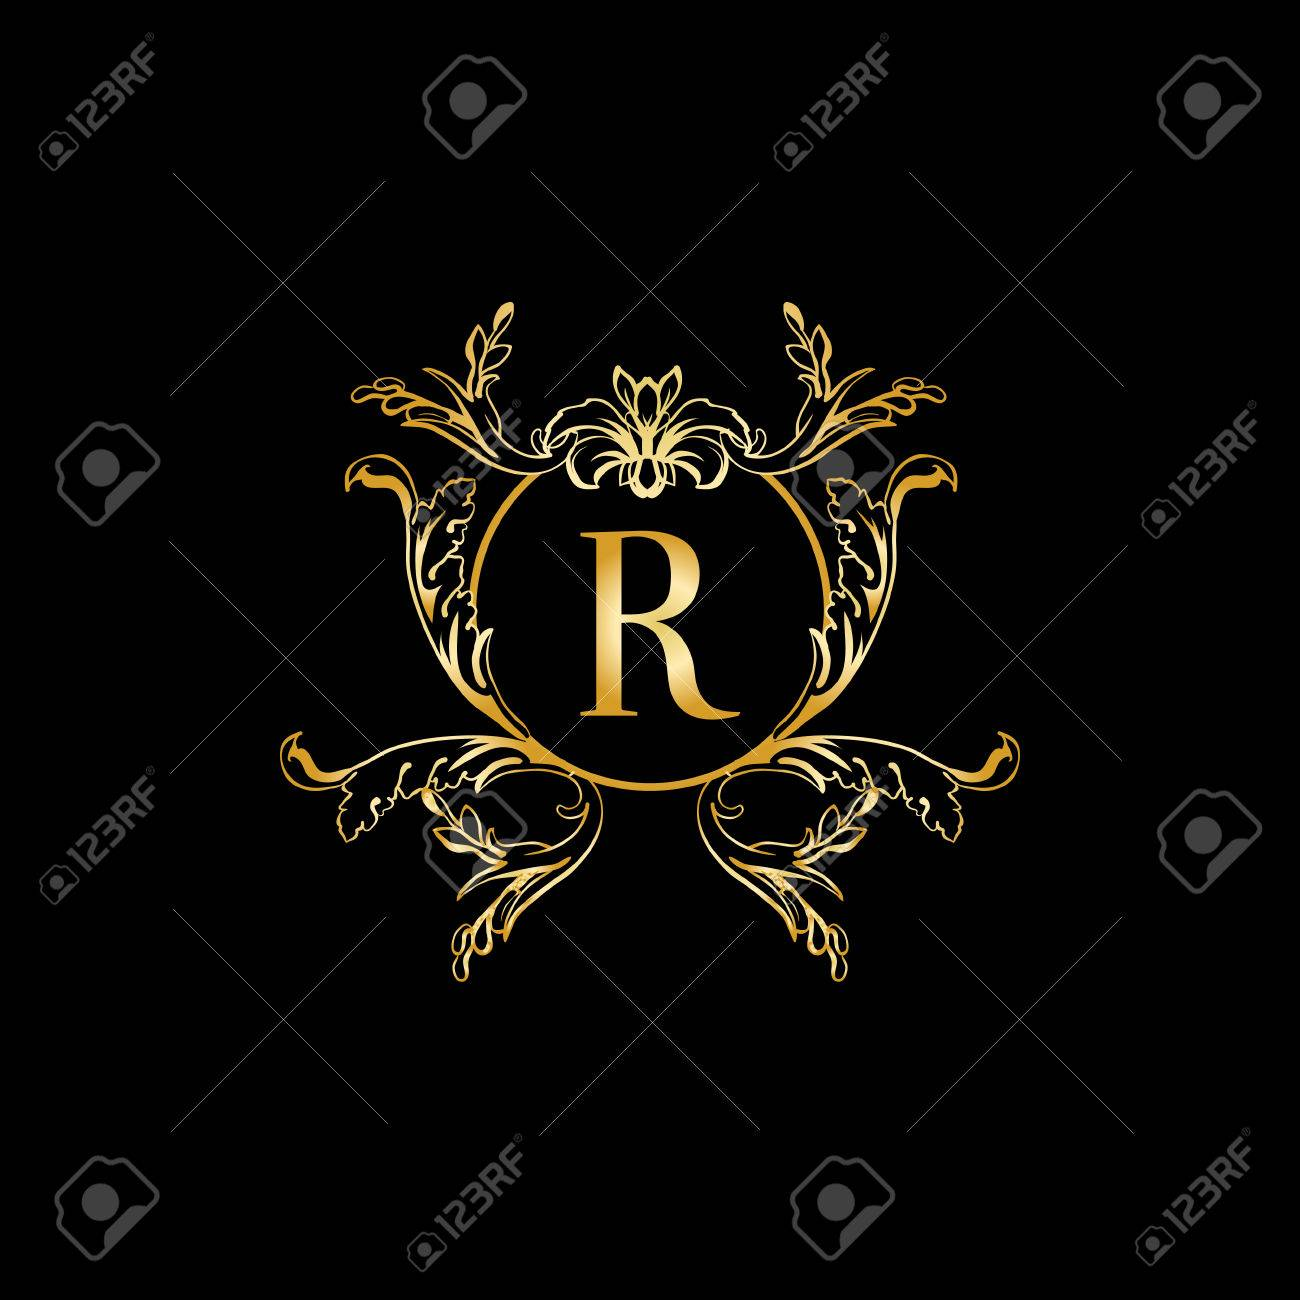 stylish and elegant monogram design template with letter r vector